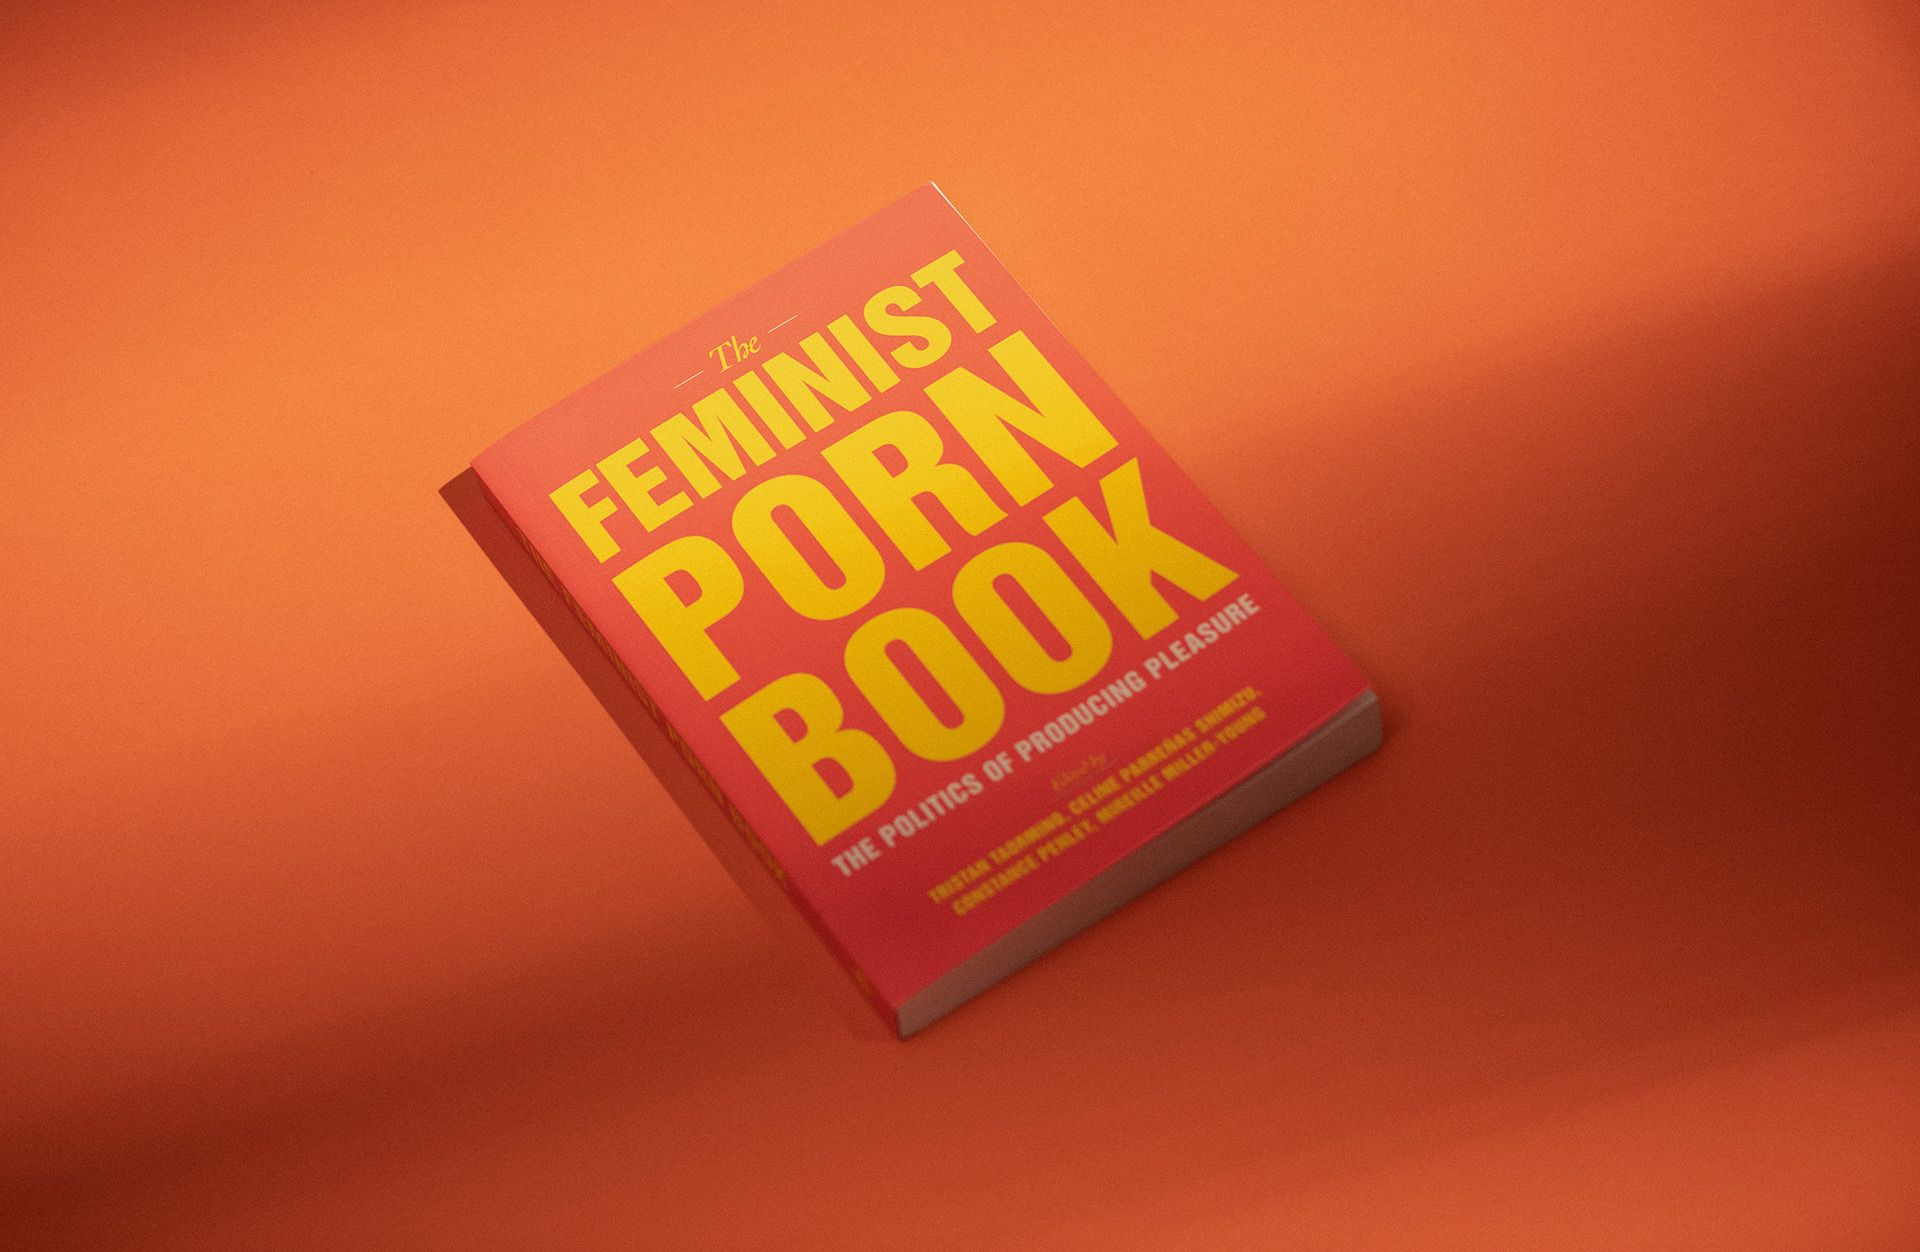 Book with a soft cover of an orange tint titled THE FEMINIST PORN BOOK in yellow on an orange background.